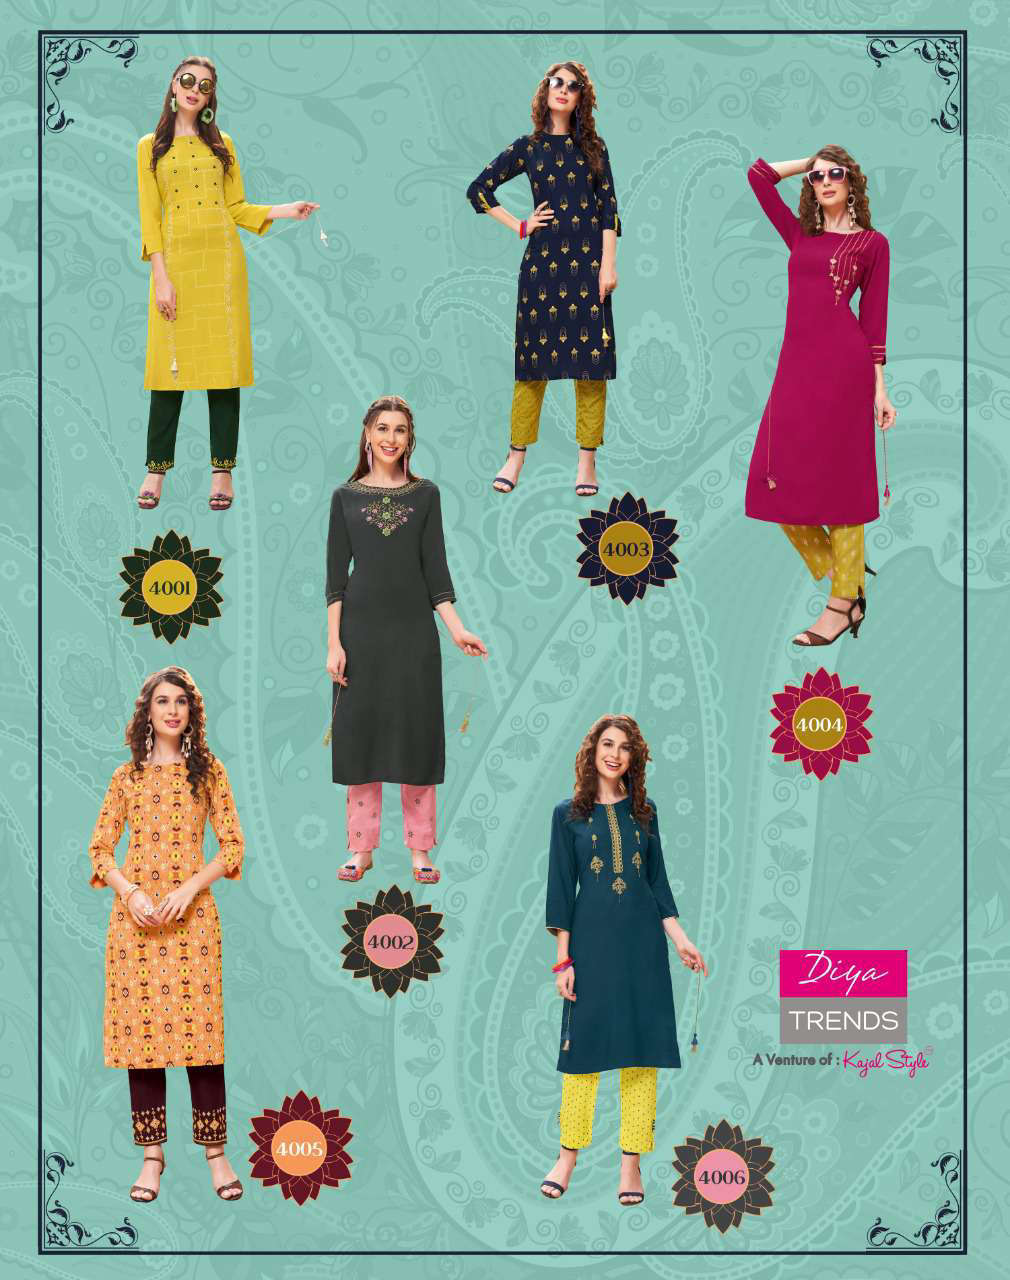 Diya Trends Forever Vol 4 by Kajal Style Kurti with Pant Wholesale Catalog 12 Pcs 14 - Diya Trends Forever Vol 4 by Kajal Style Kurti with Pant Wholesale Catalog 12 Pcs